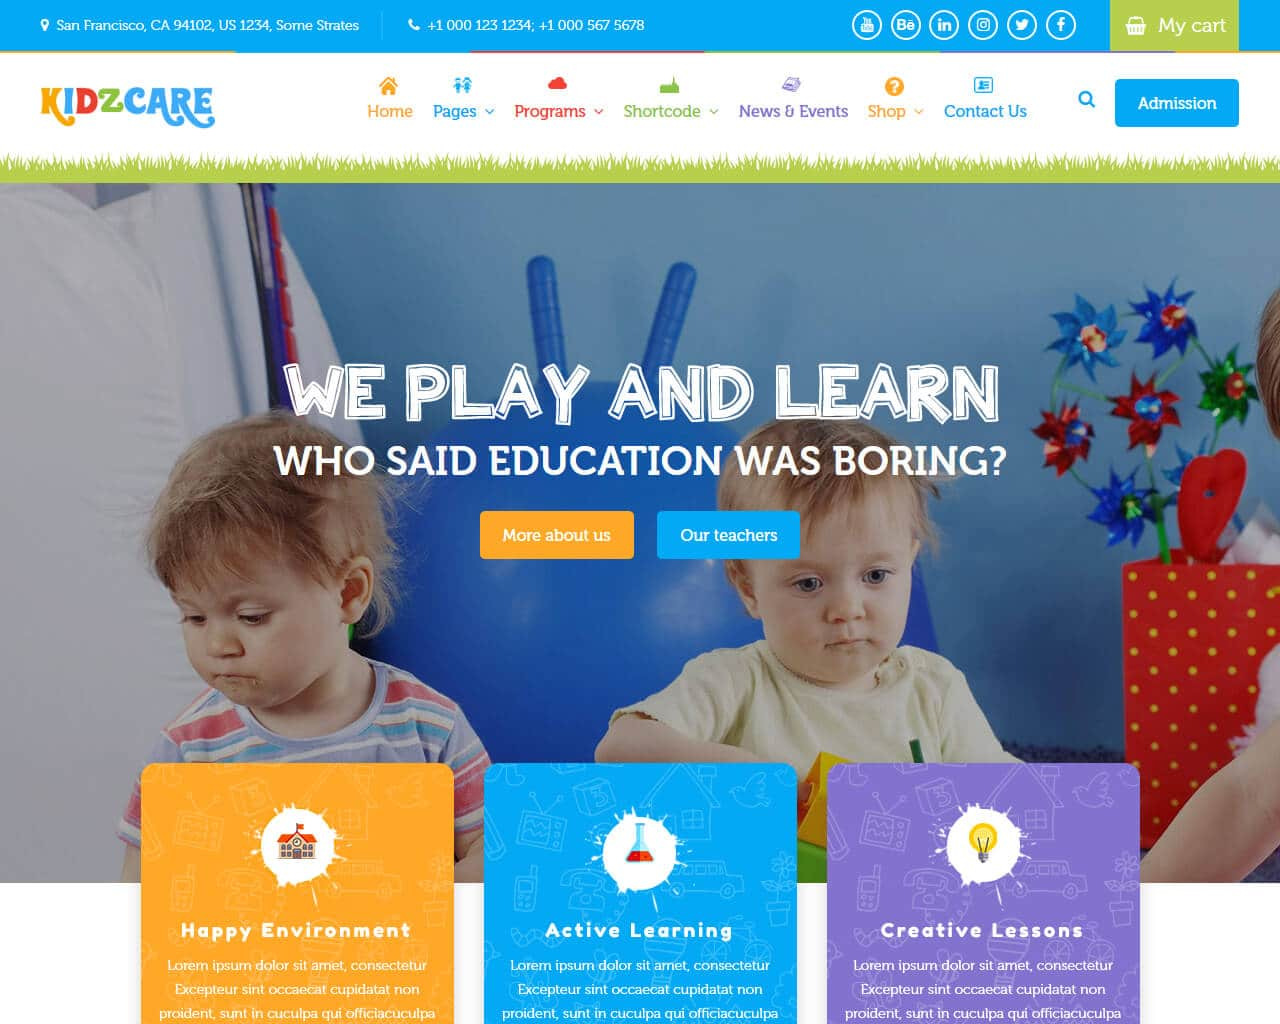 KIDZCARE Website Template